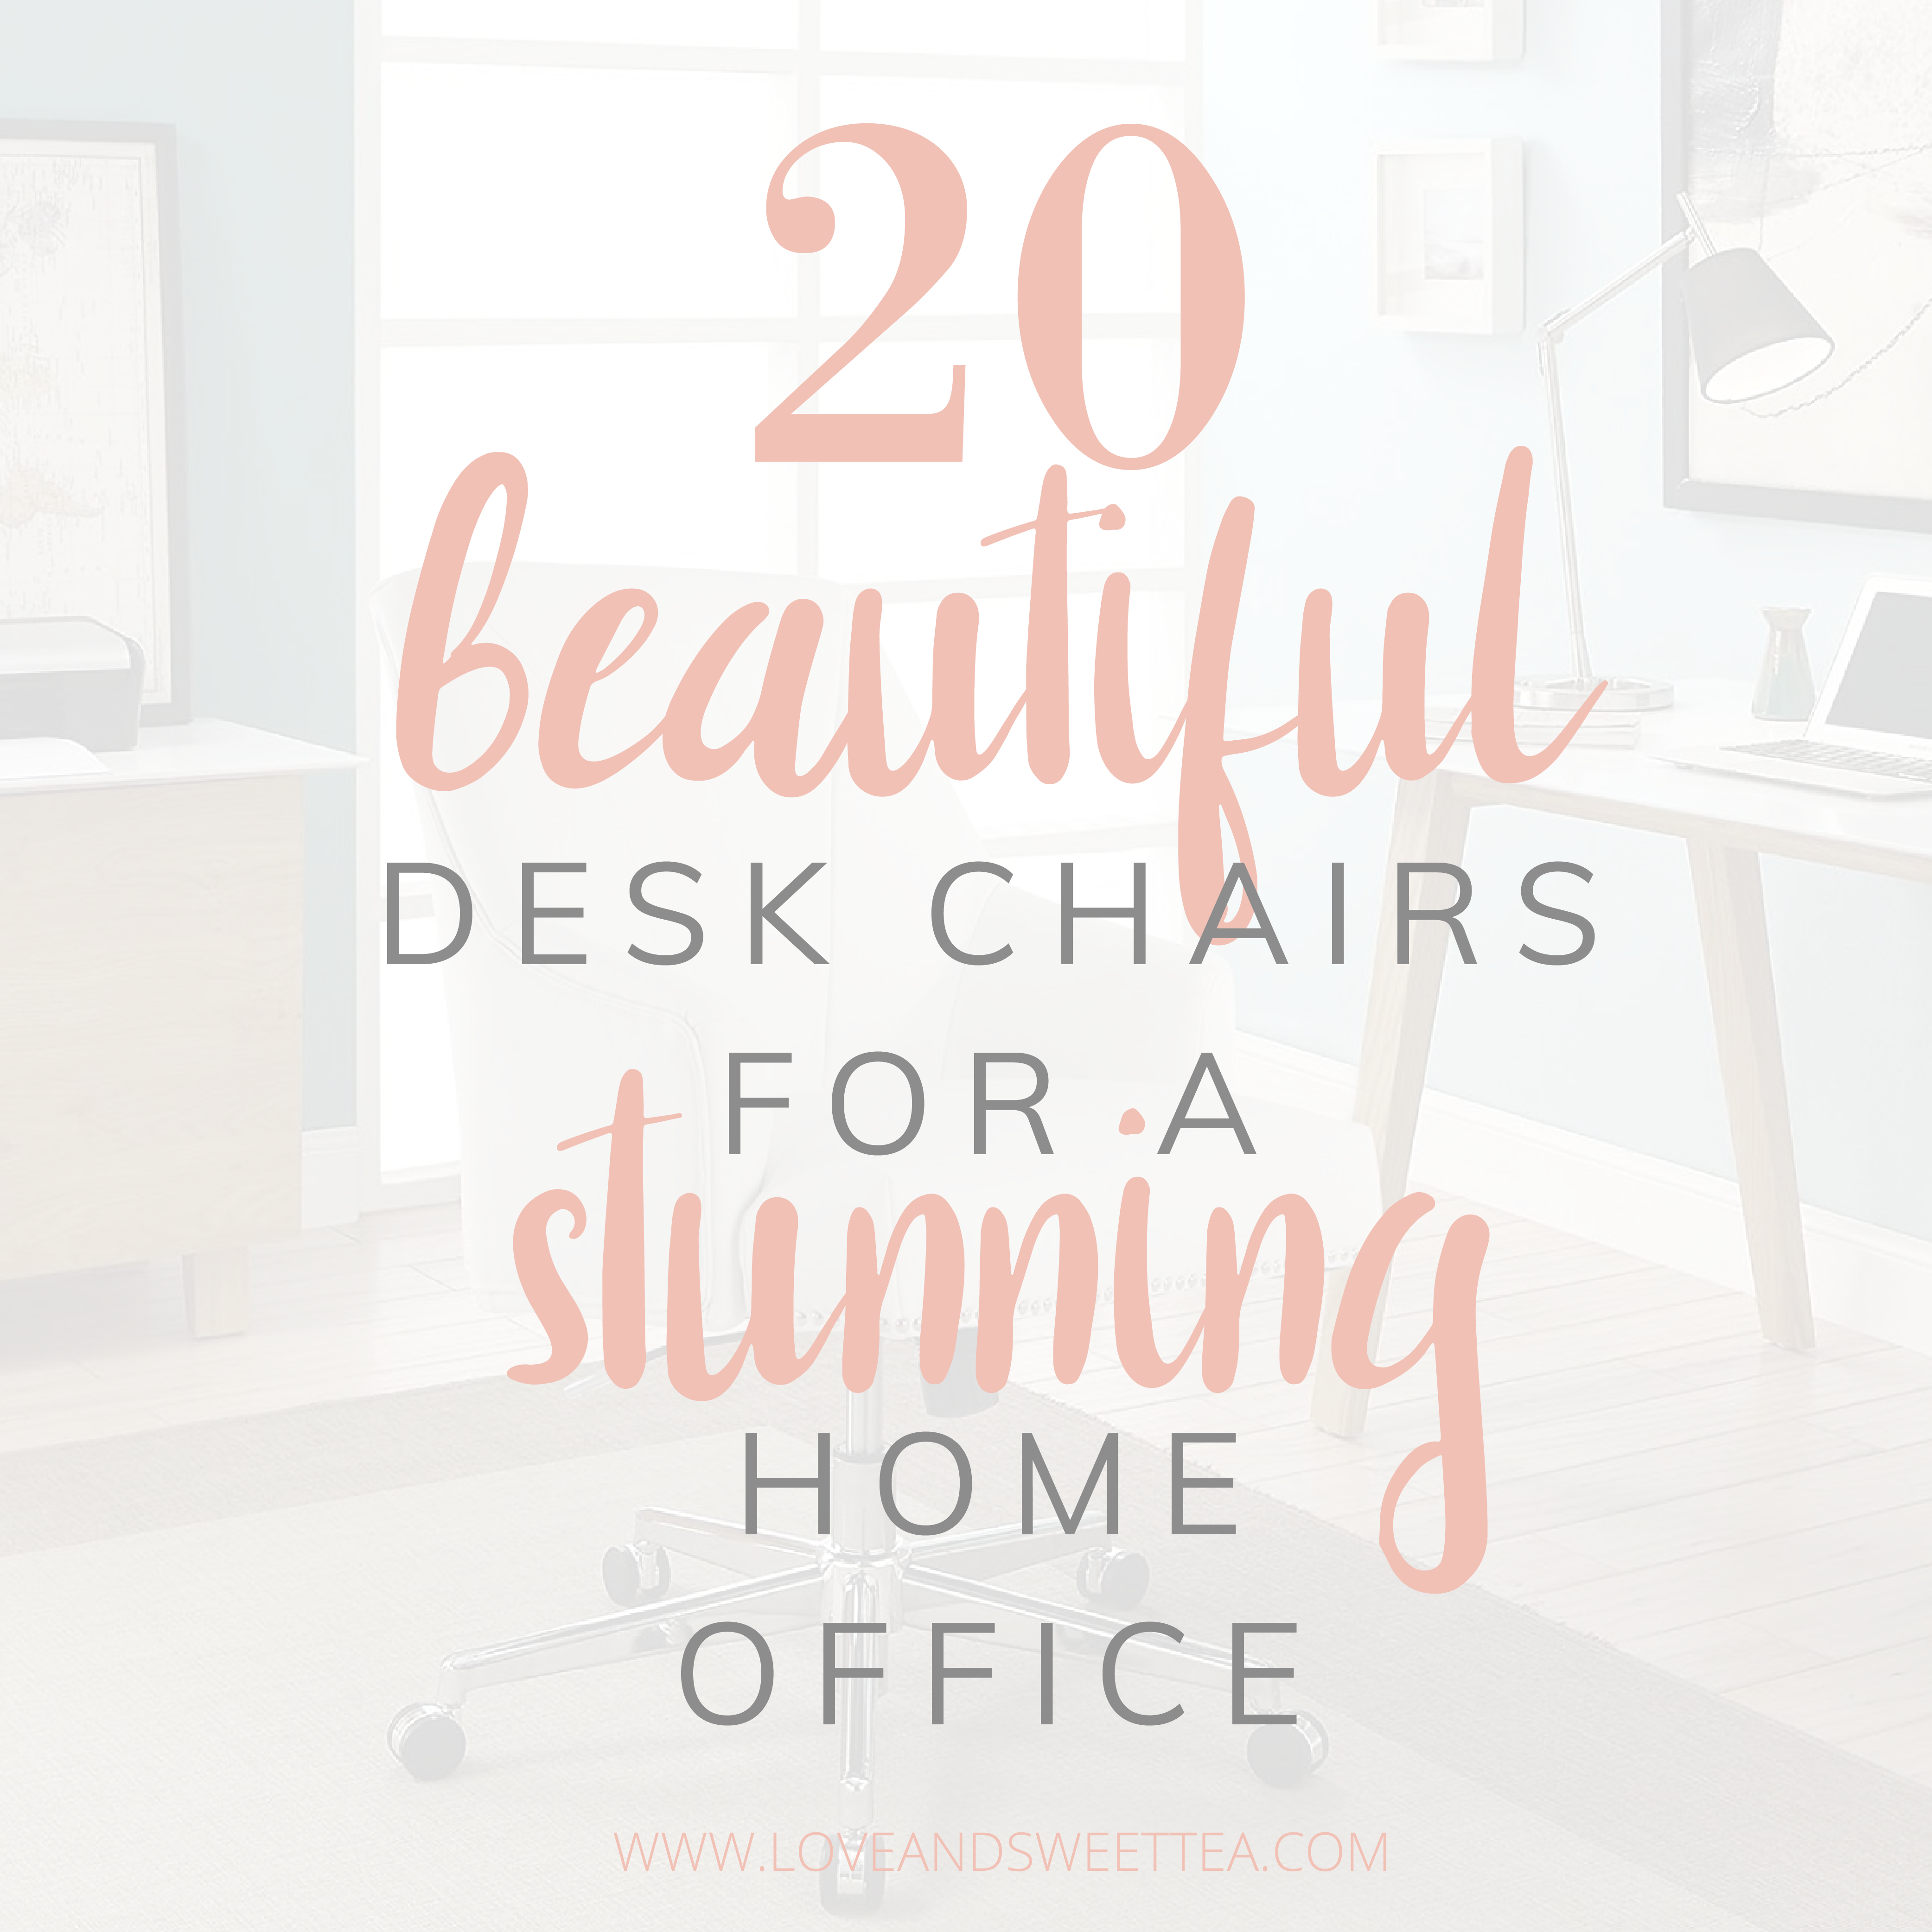 Amazing 20 Cheap Comfy Desk Chair Ideas For Beautiful Home Offices Gmtry Best Dining Table And Chair Ideas Images Gmtryco